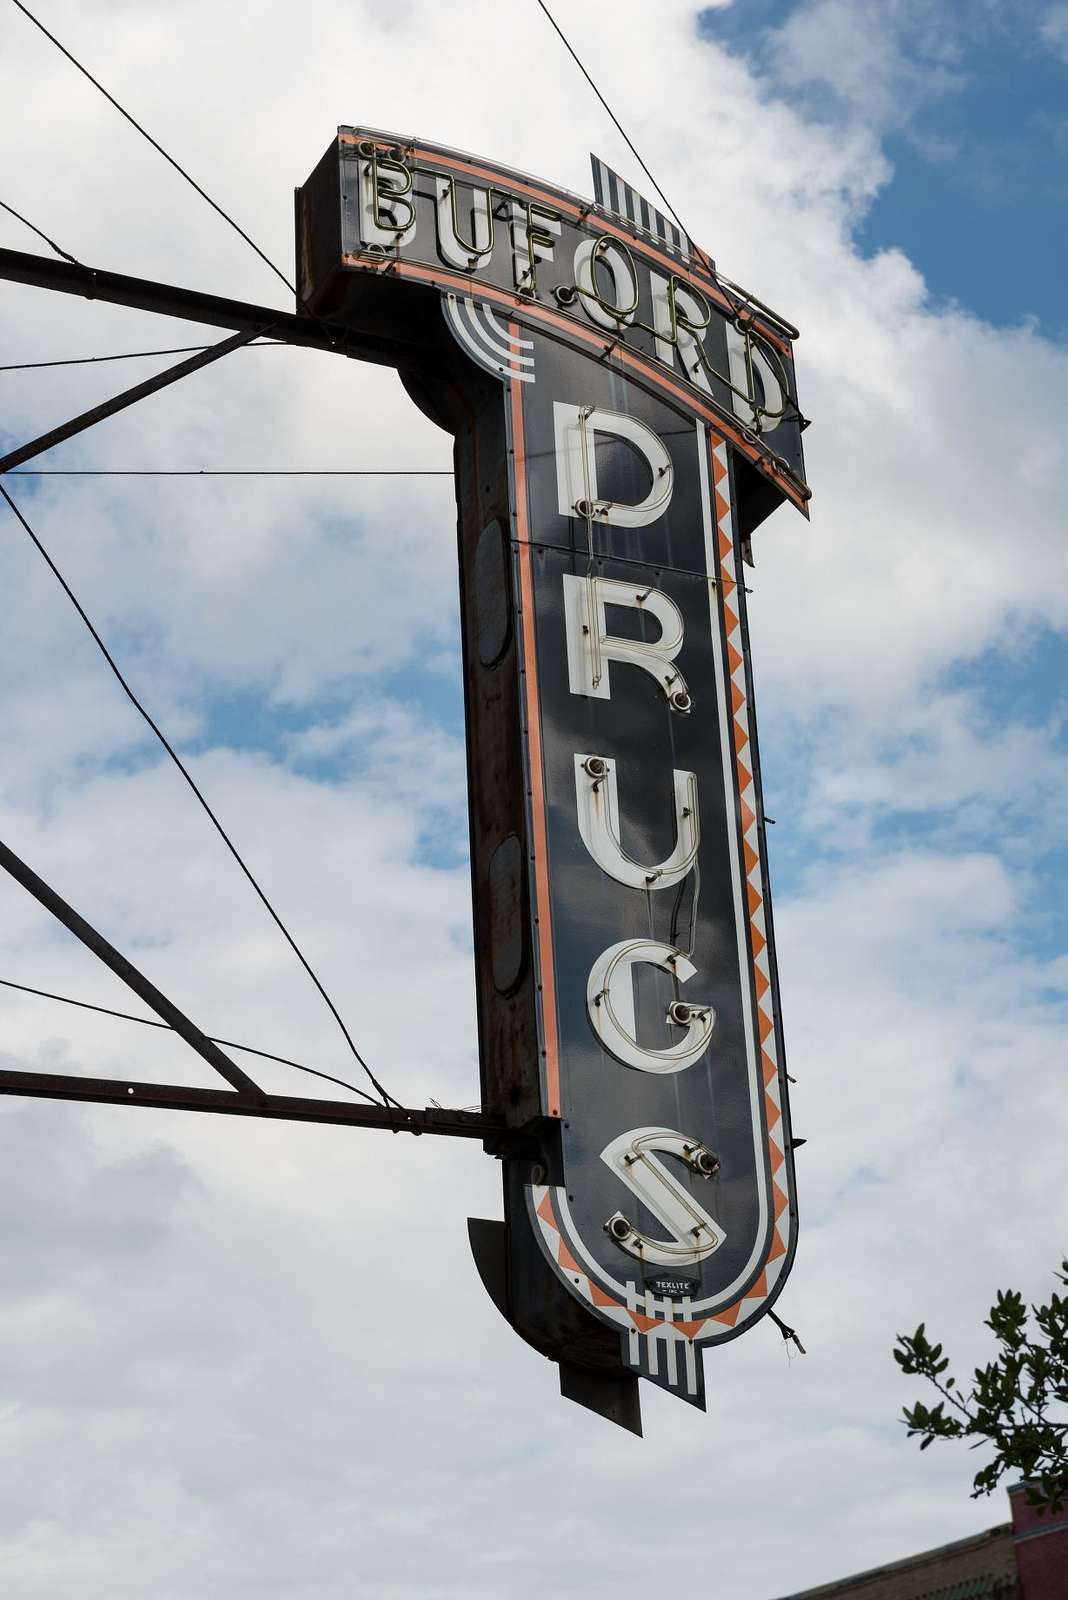 Vintage marquee for Buford Drug Store in Terrell, Texas, east of Dallas